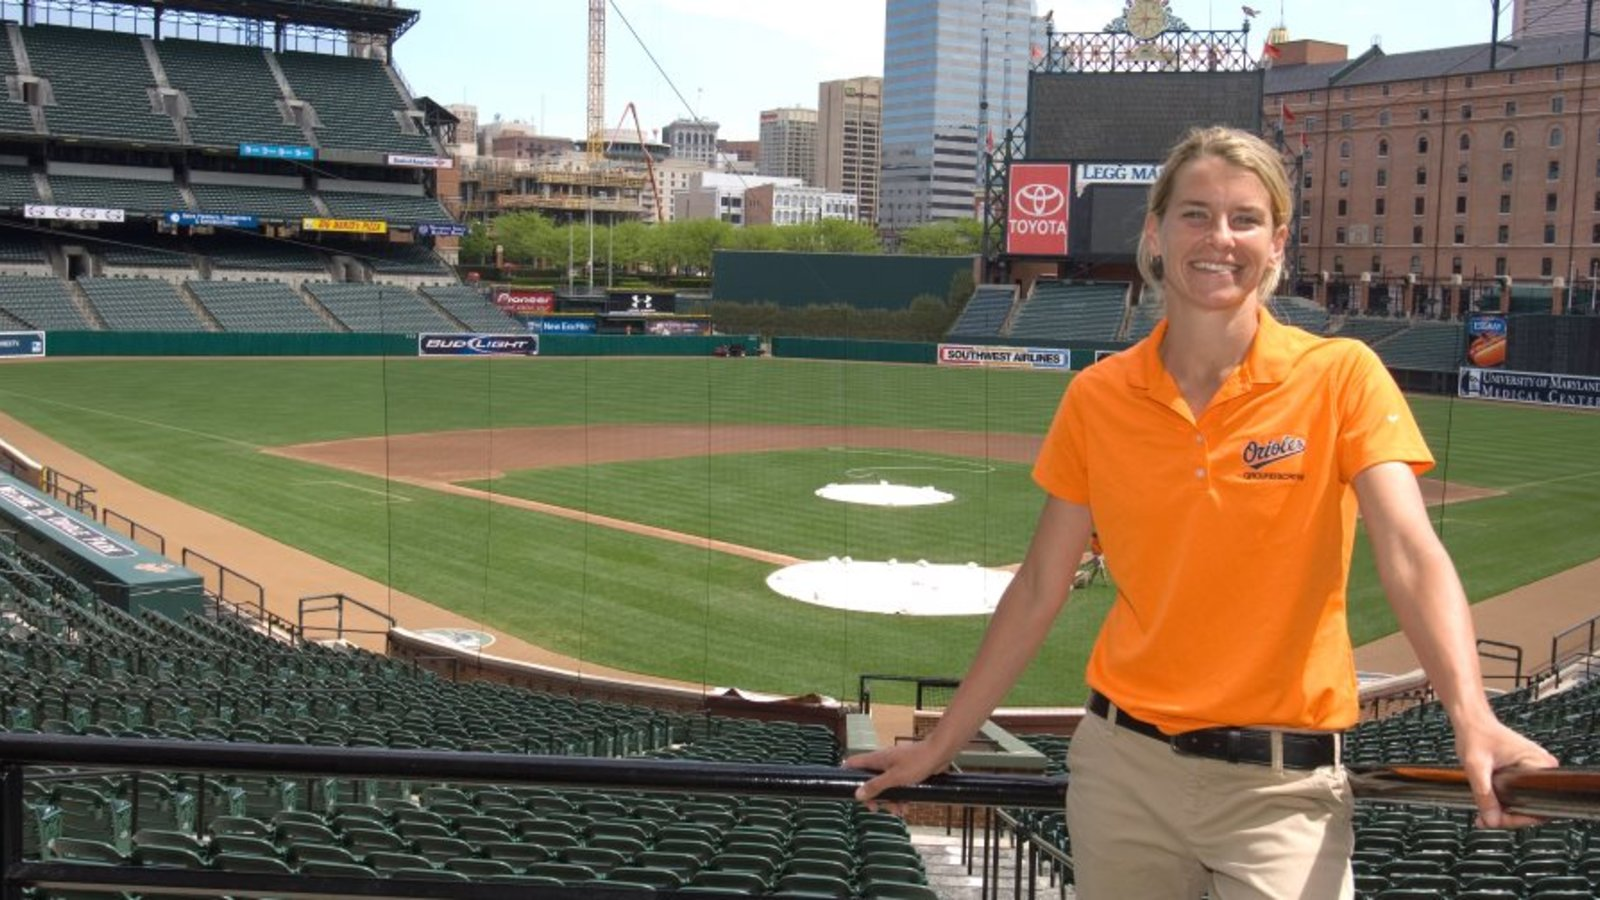 Diamonds Are a Girl's Best Friend - Women in Sports Careers